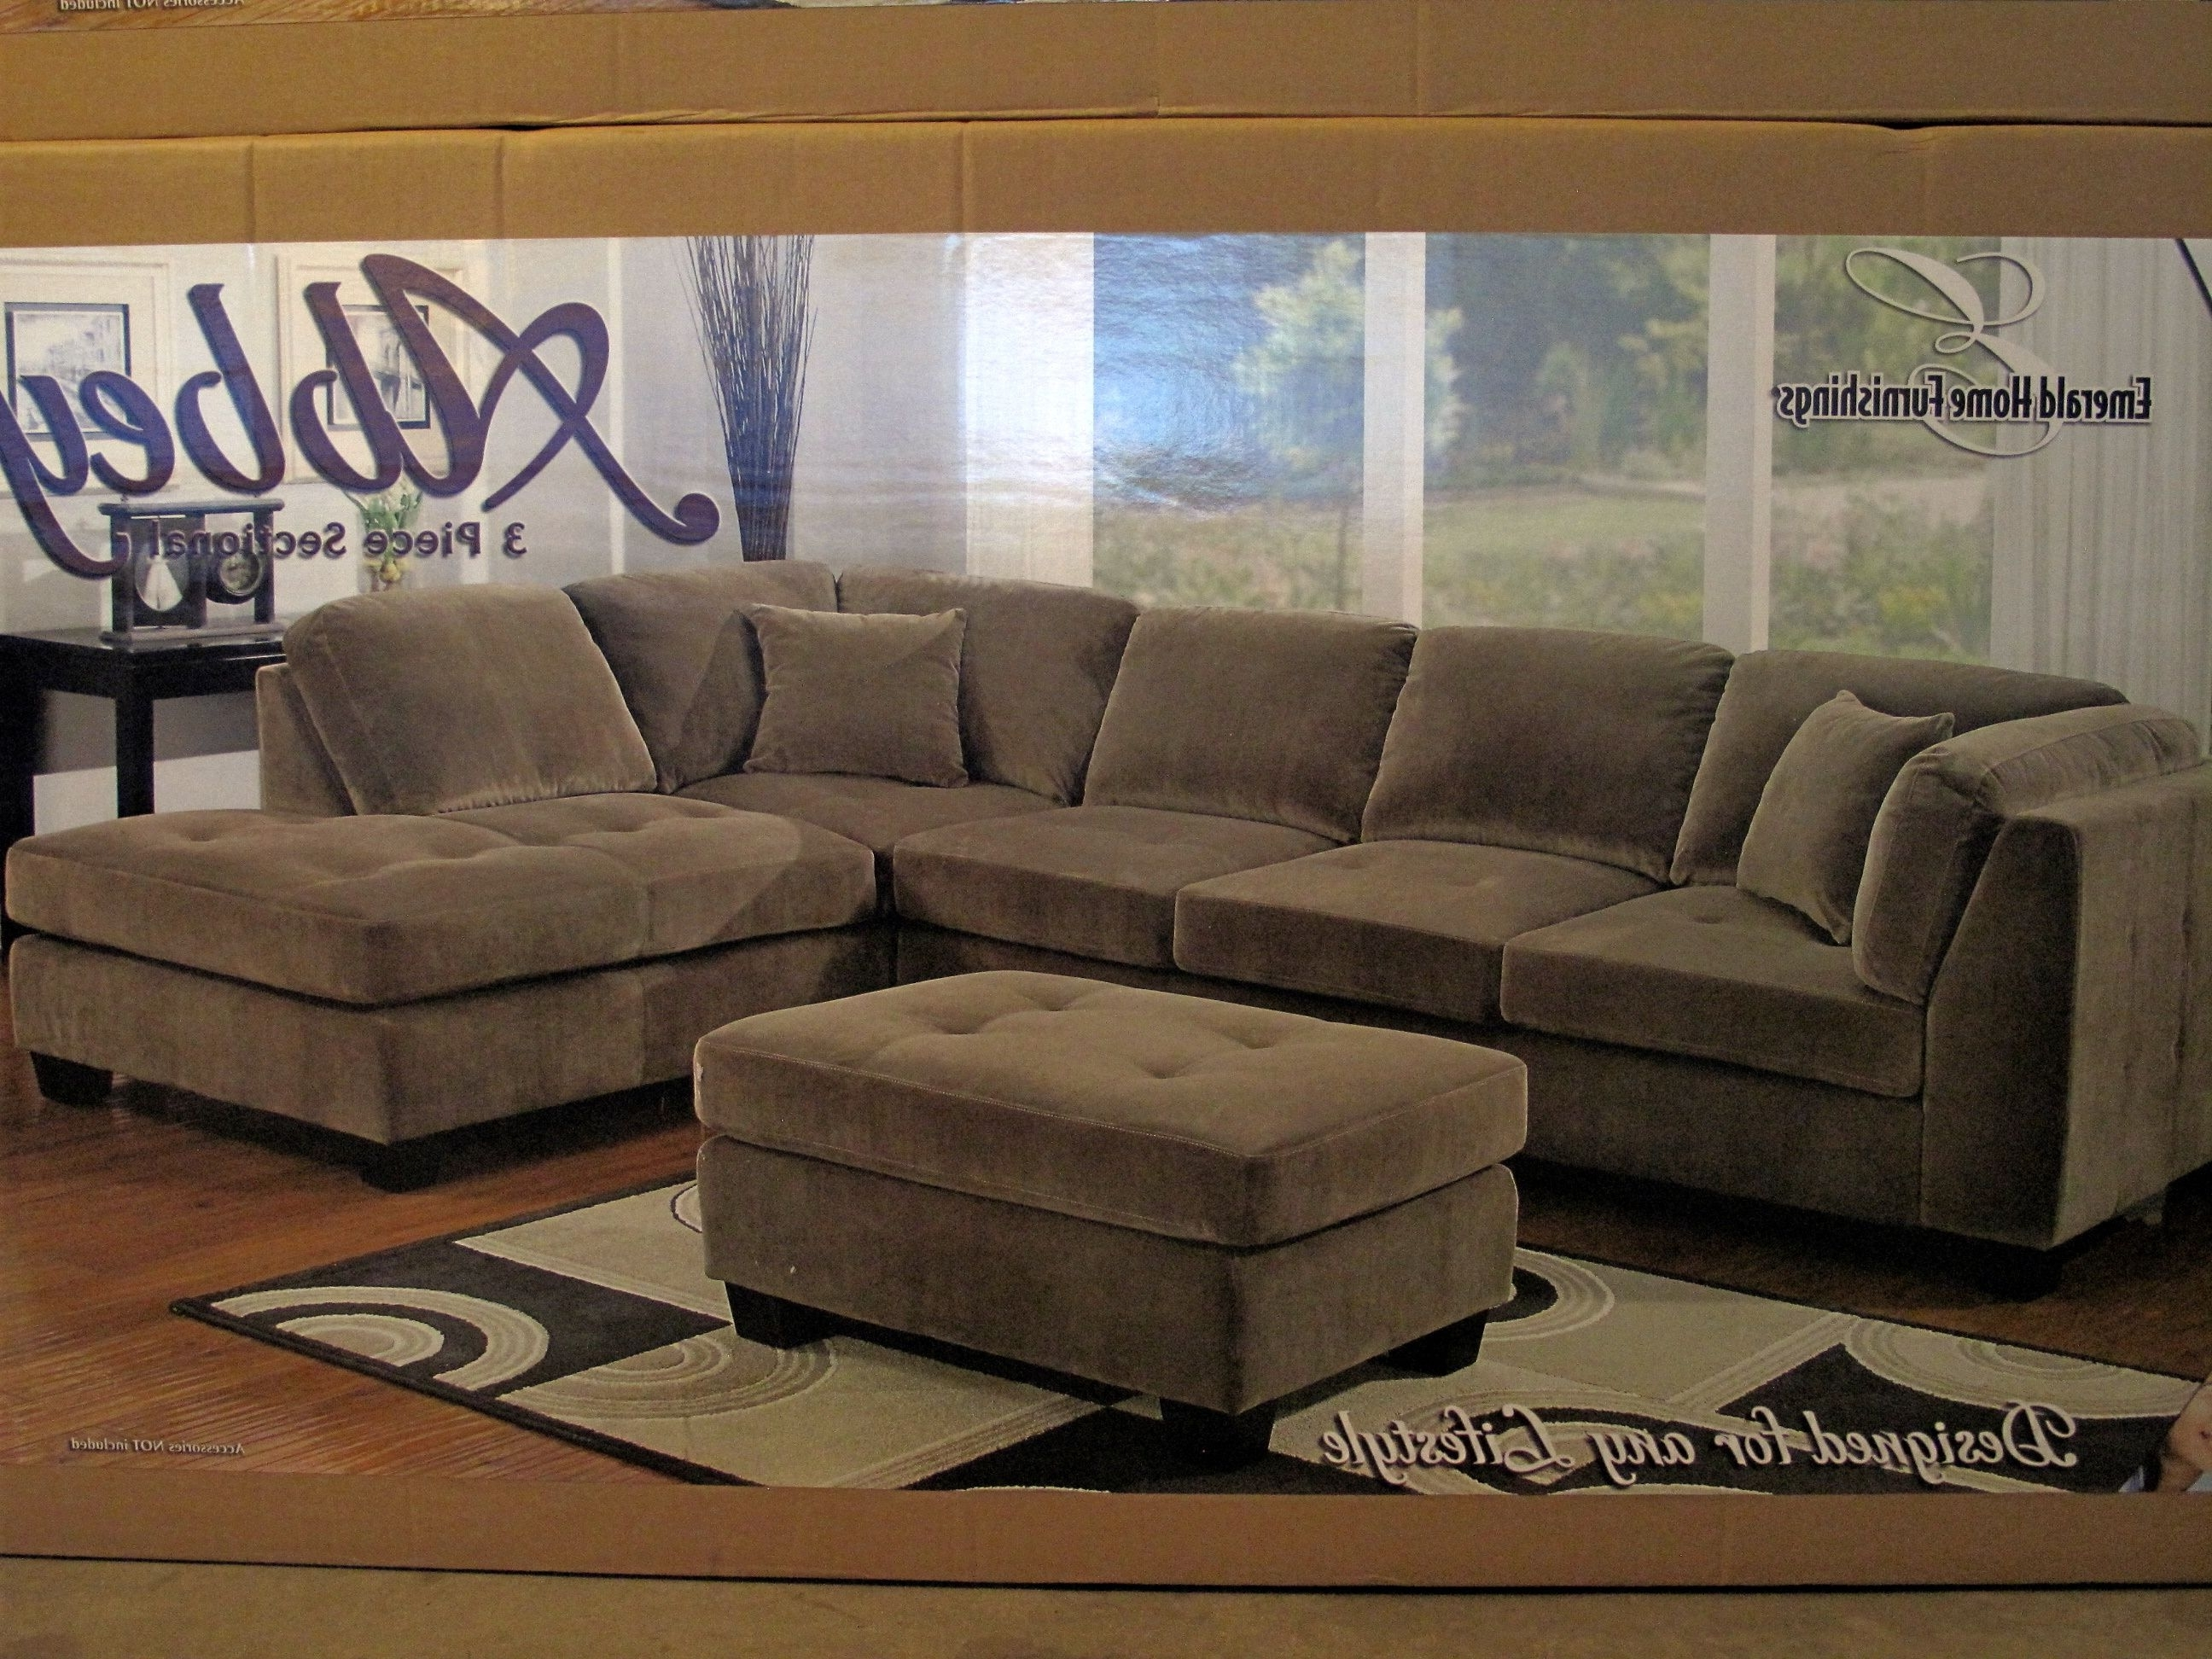 Sectional Sofas At Costco Regarding Most Recently Released This Sectional Is Currently At Costco 07/11 (In The Warehouse (View 12 of 15)